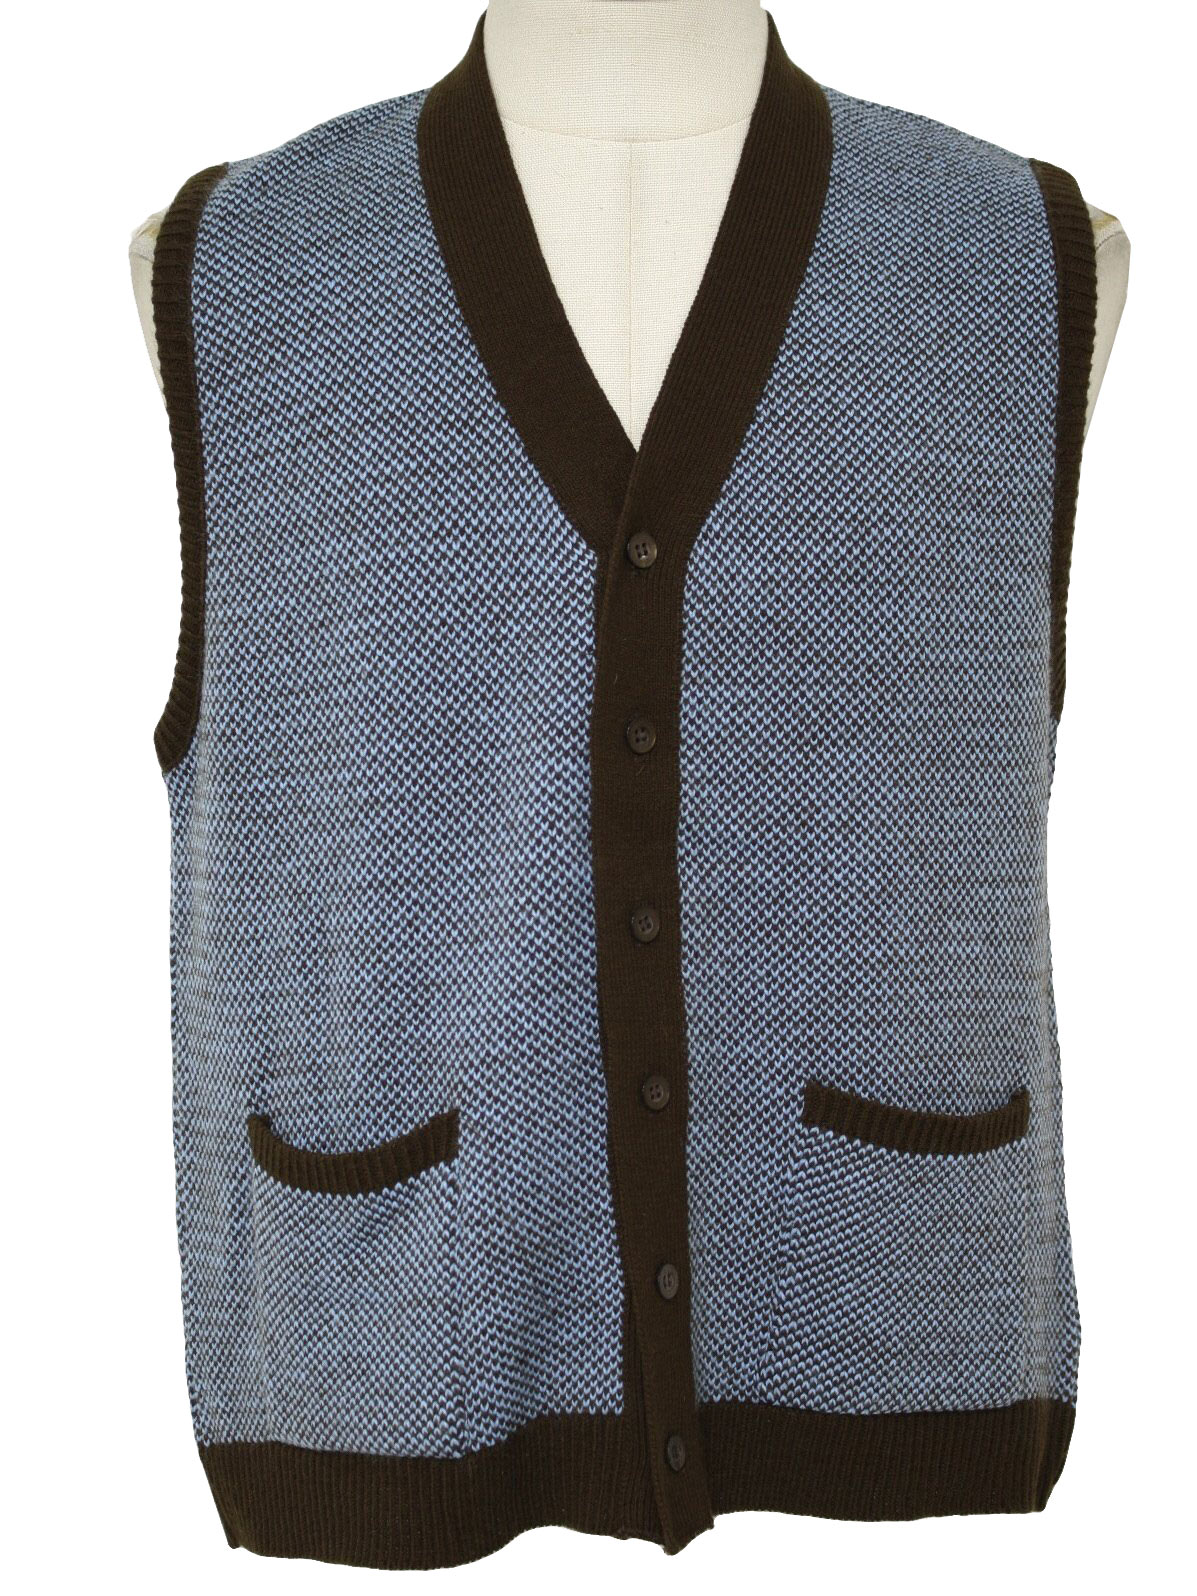 Retro 70's Vest: 70s -Donegal- Mens aqua and dark brown acrylic ...